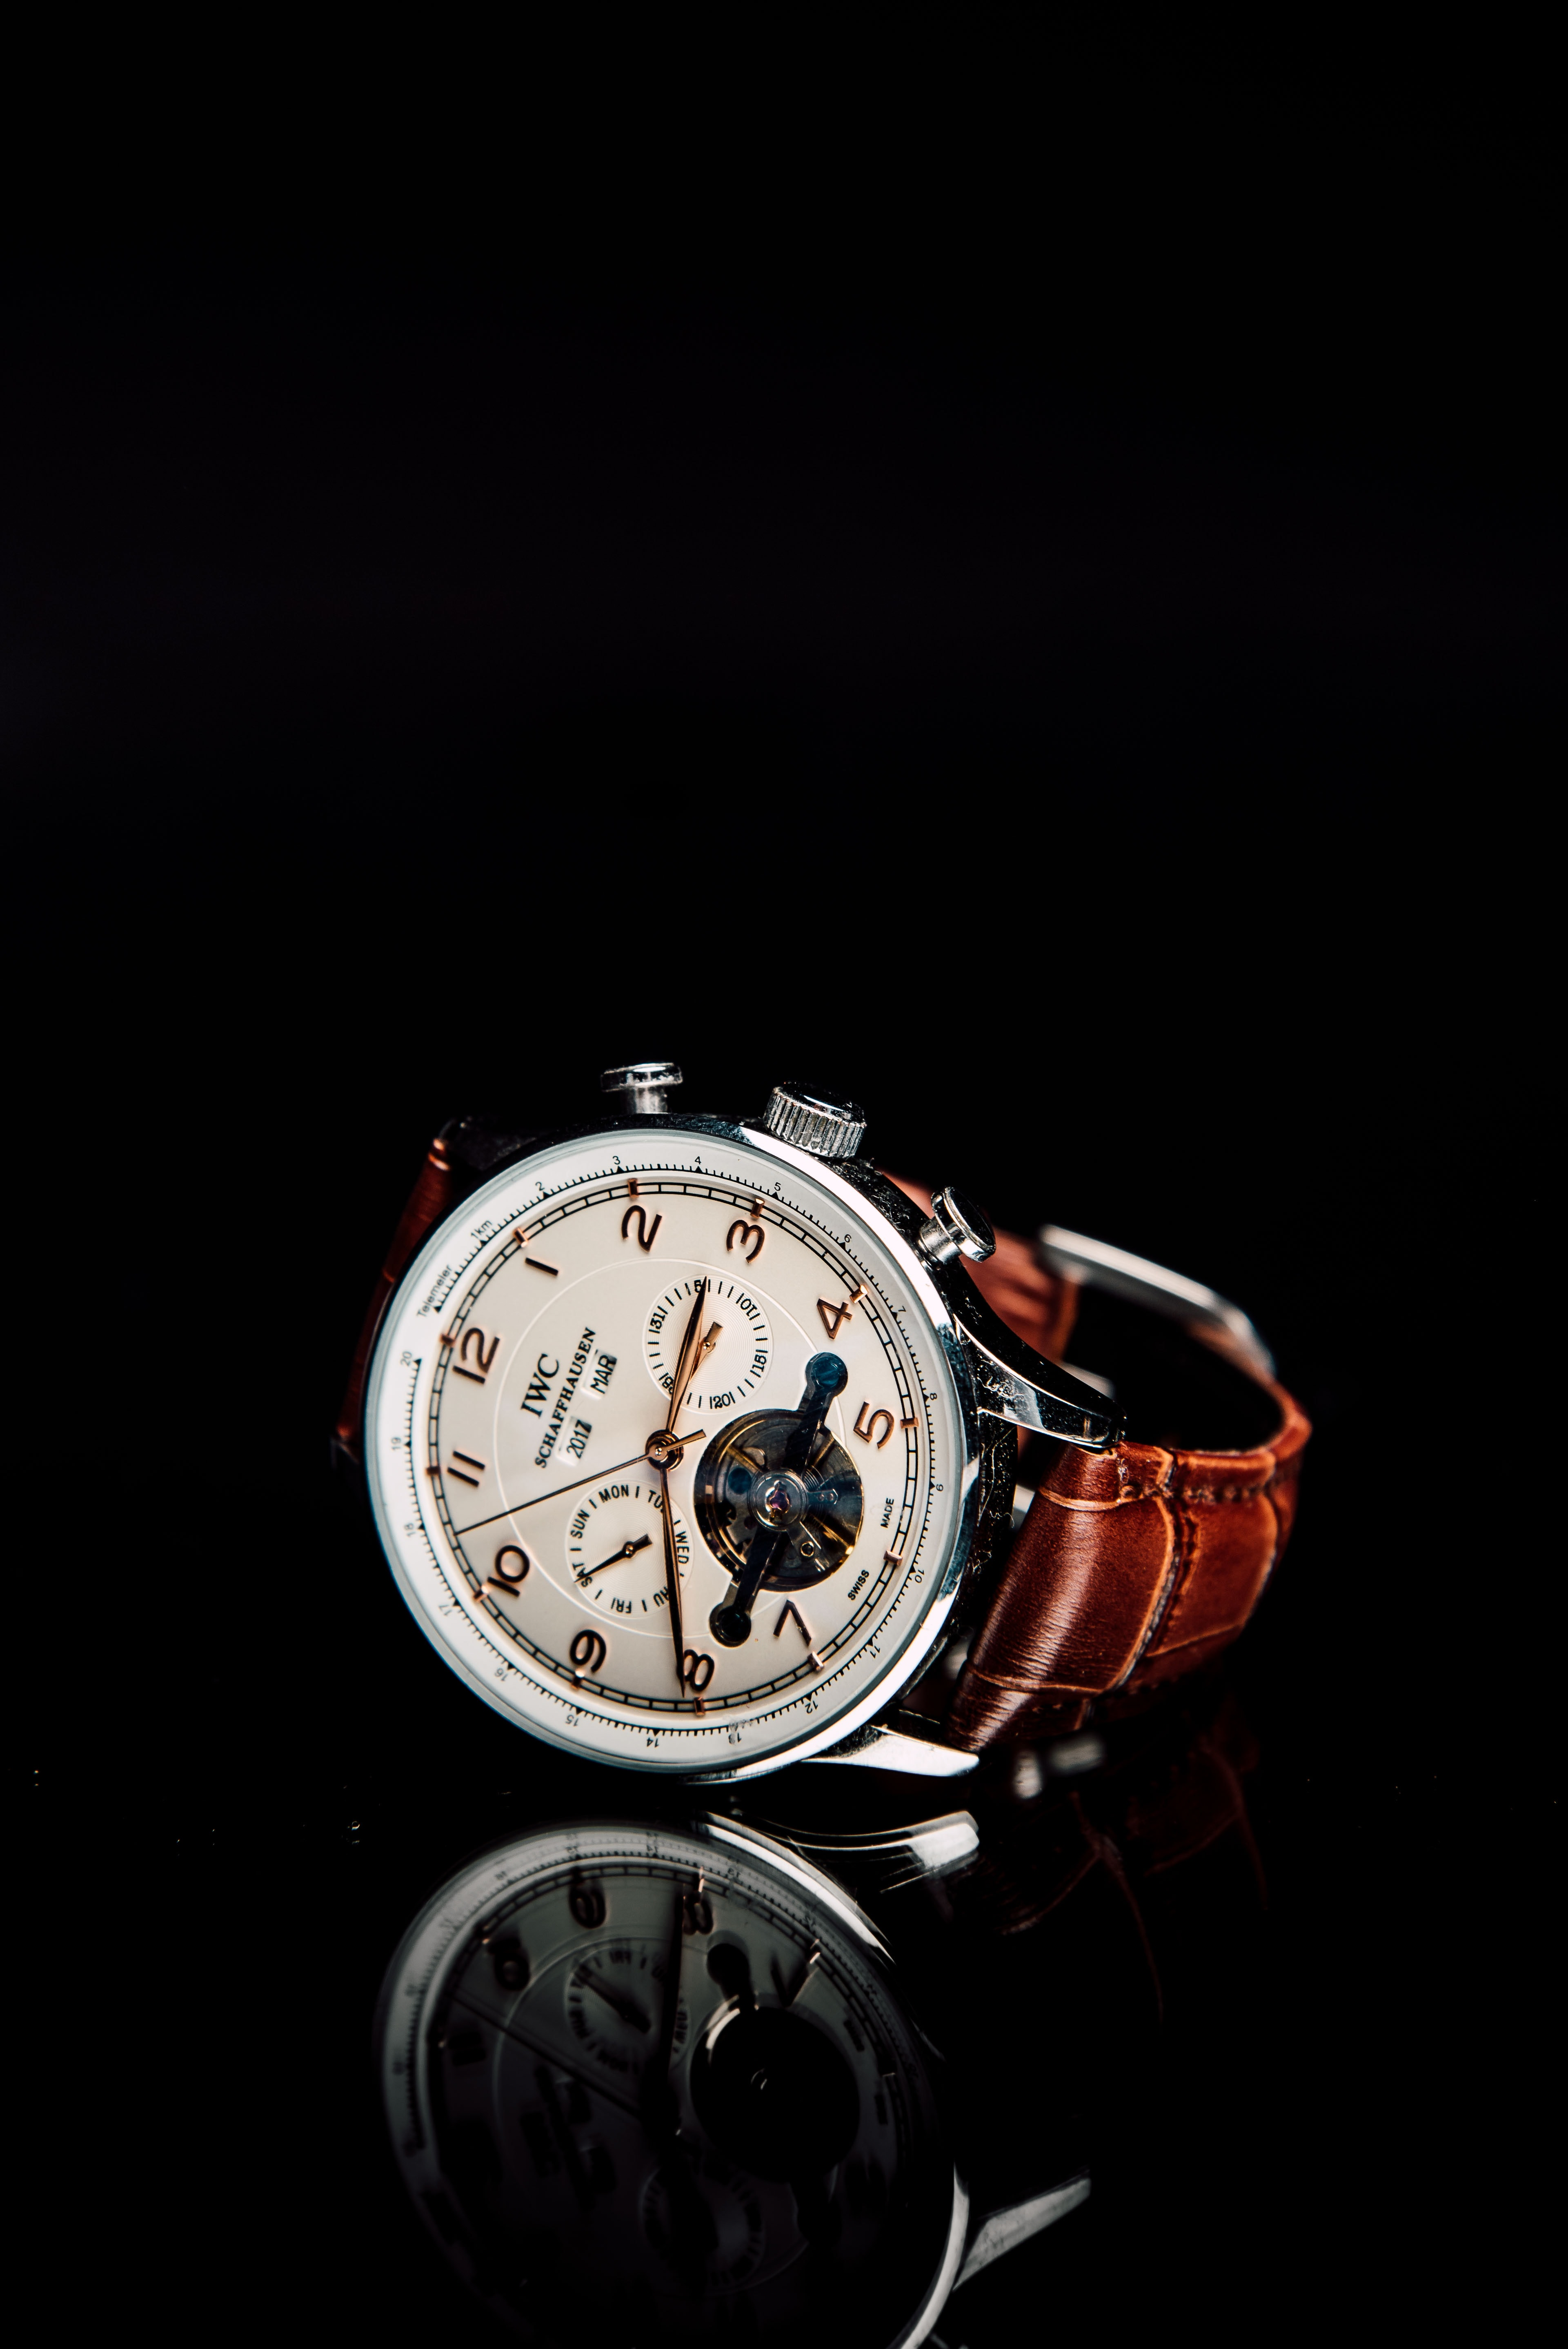 round silver-colored chronograph watch with brown leather strap